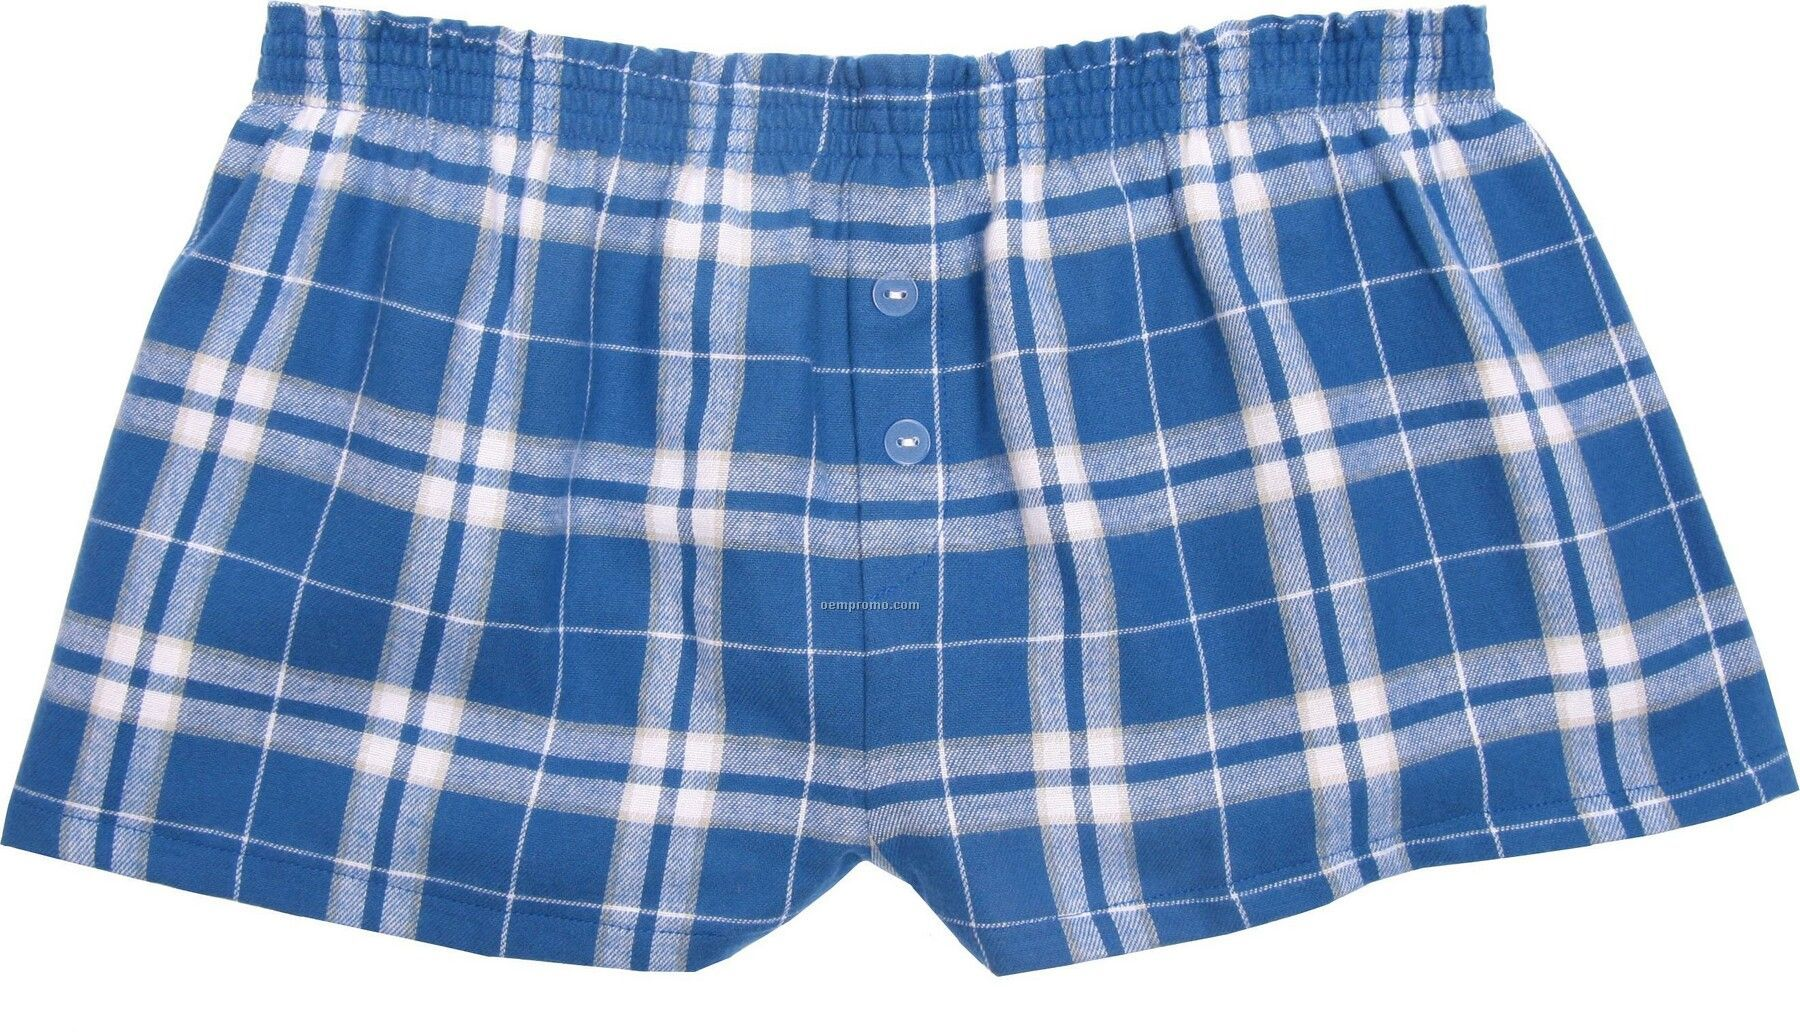 Ladies' Royal Blue/Silver Flannel Bitty Boxer Short With False Fly